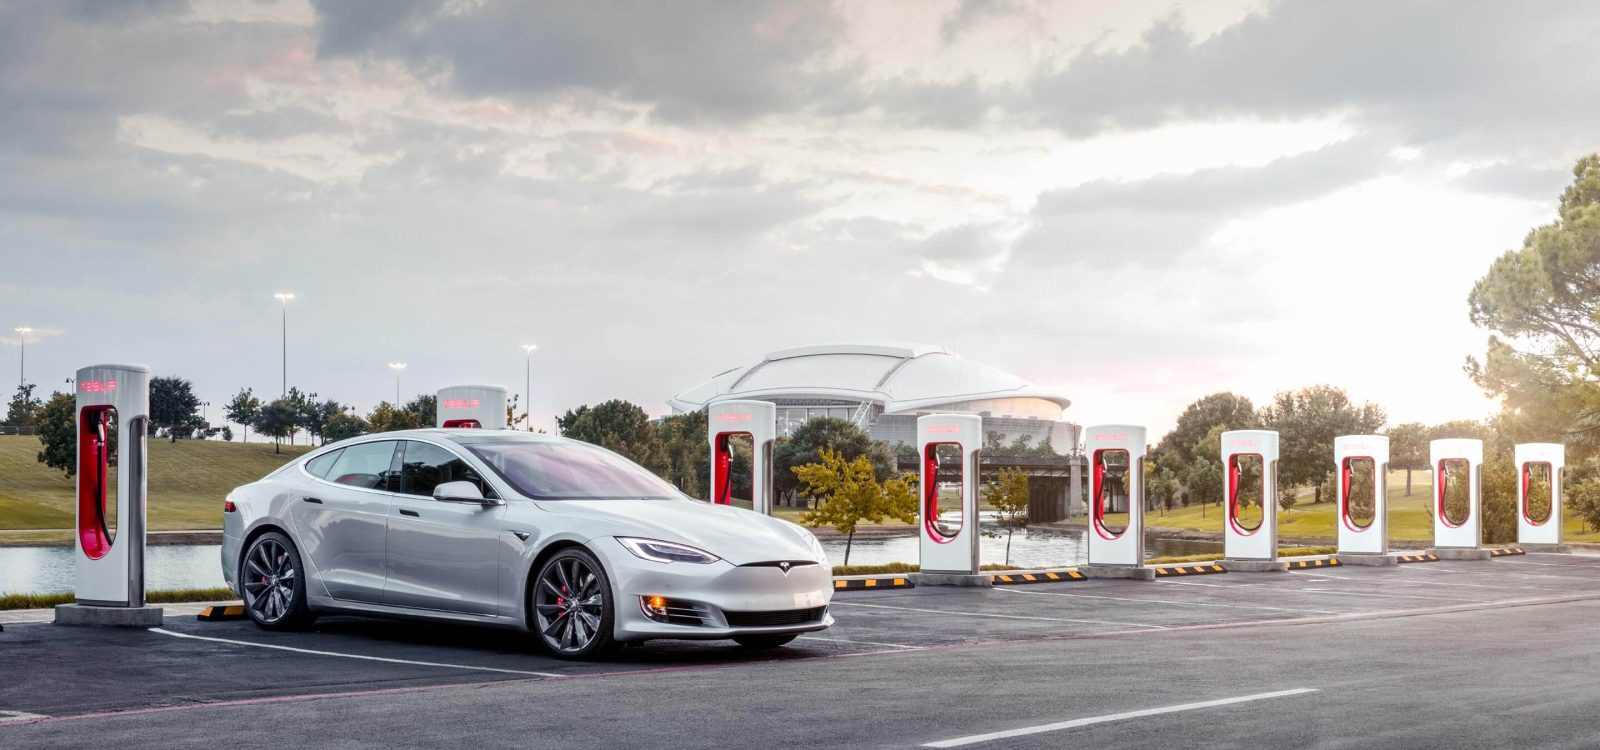 Tesla S Surge In The Netherlands Ahead Of End An Ev Incentive